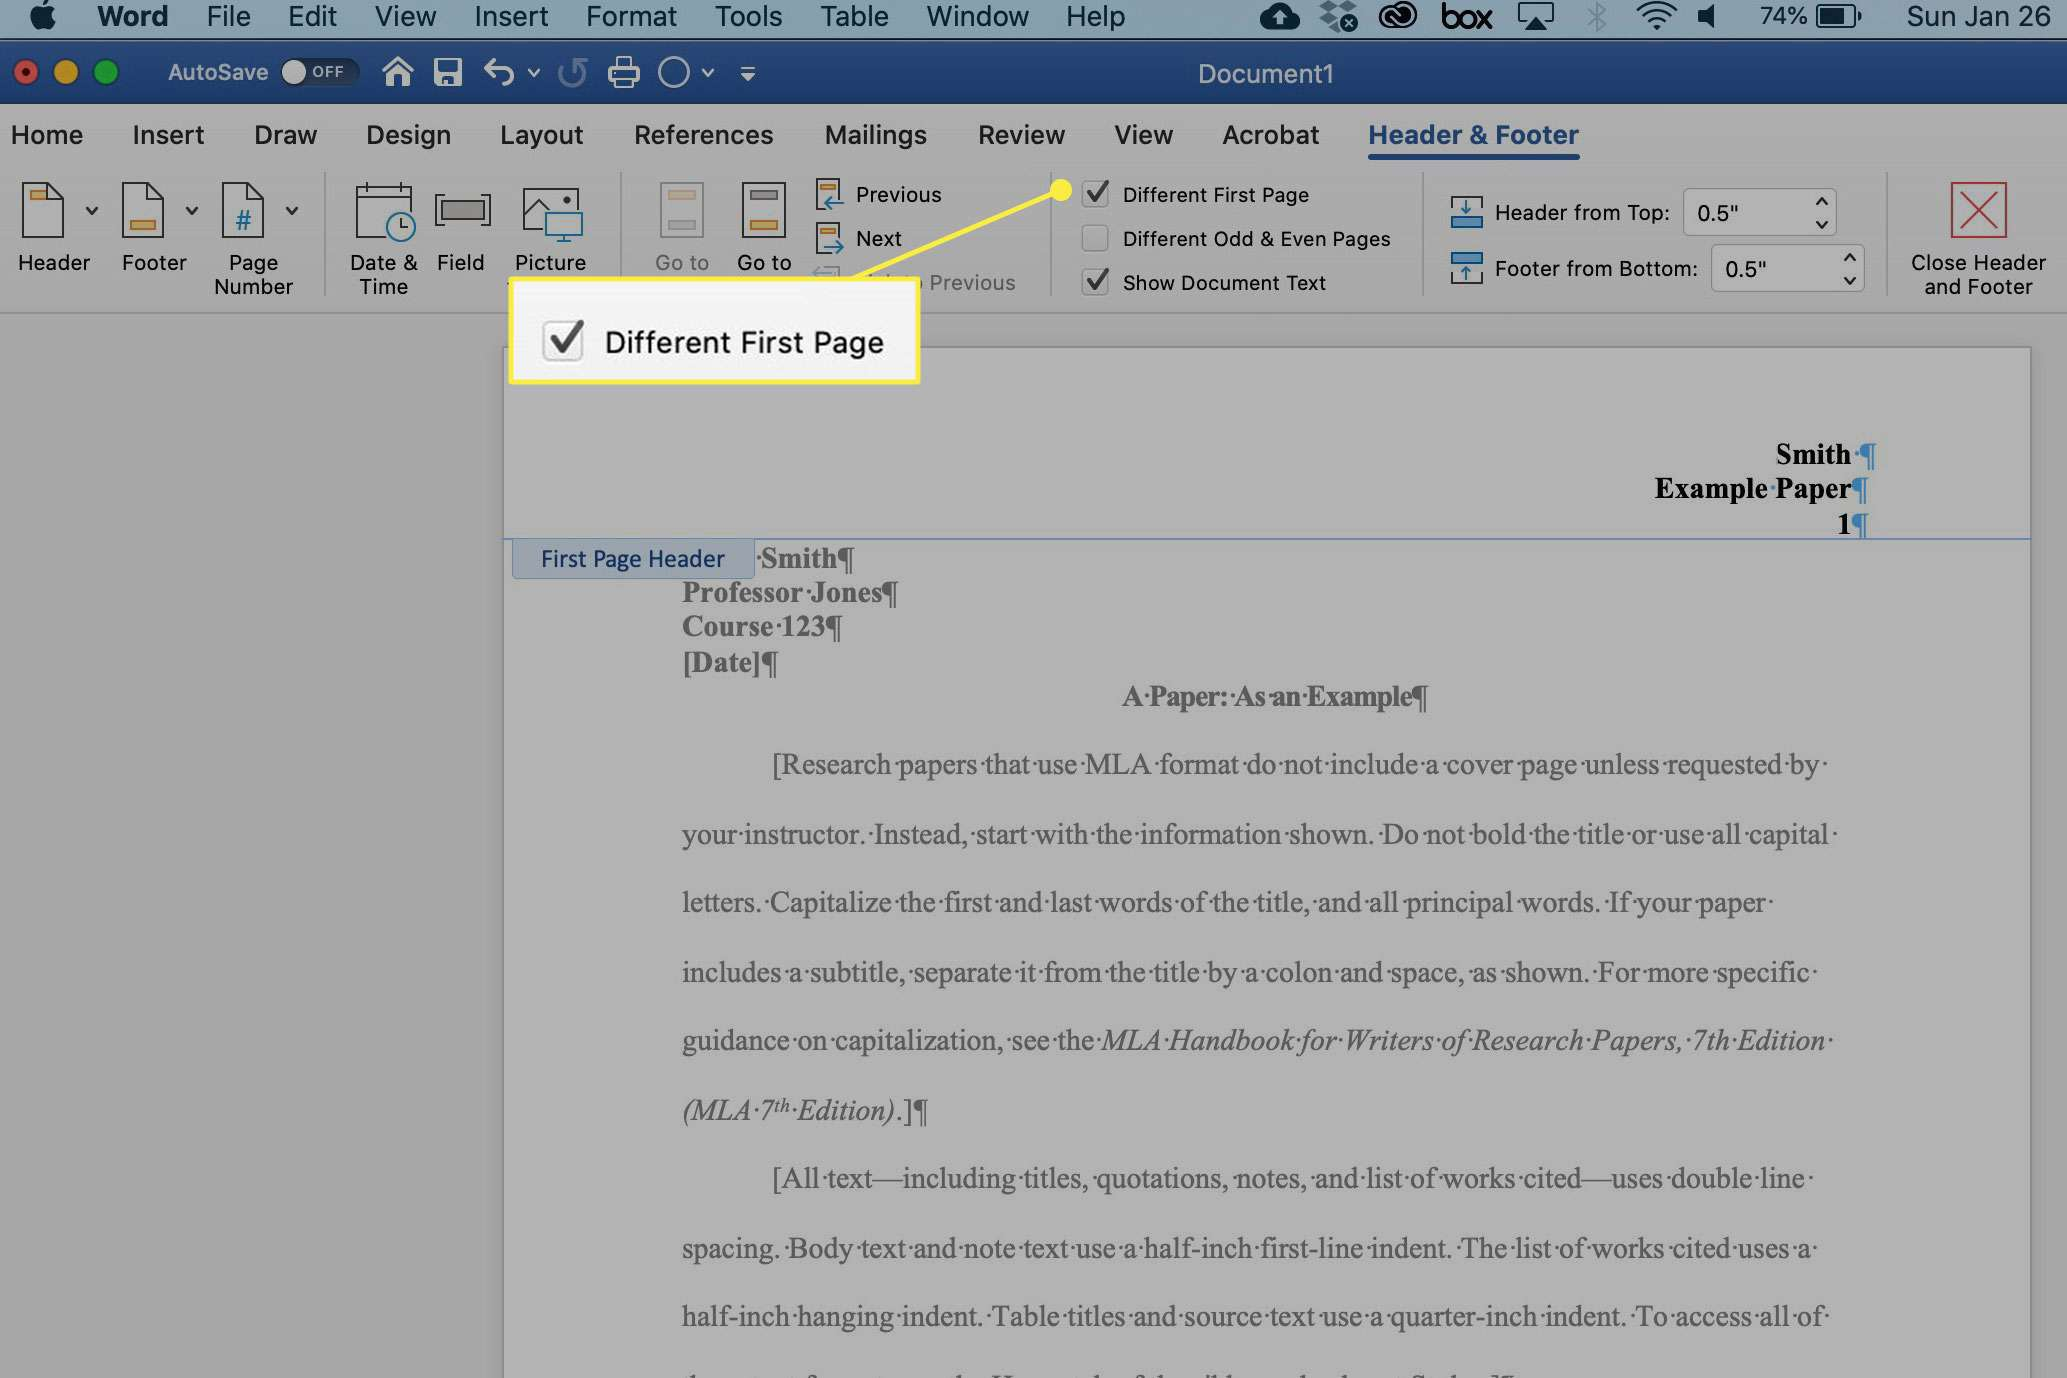 A screenshot of Word with the Different First Page option highlighted